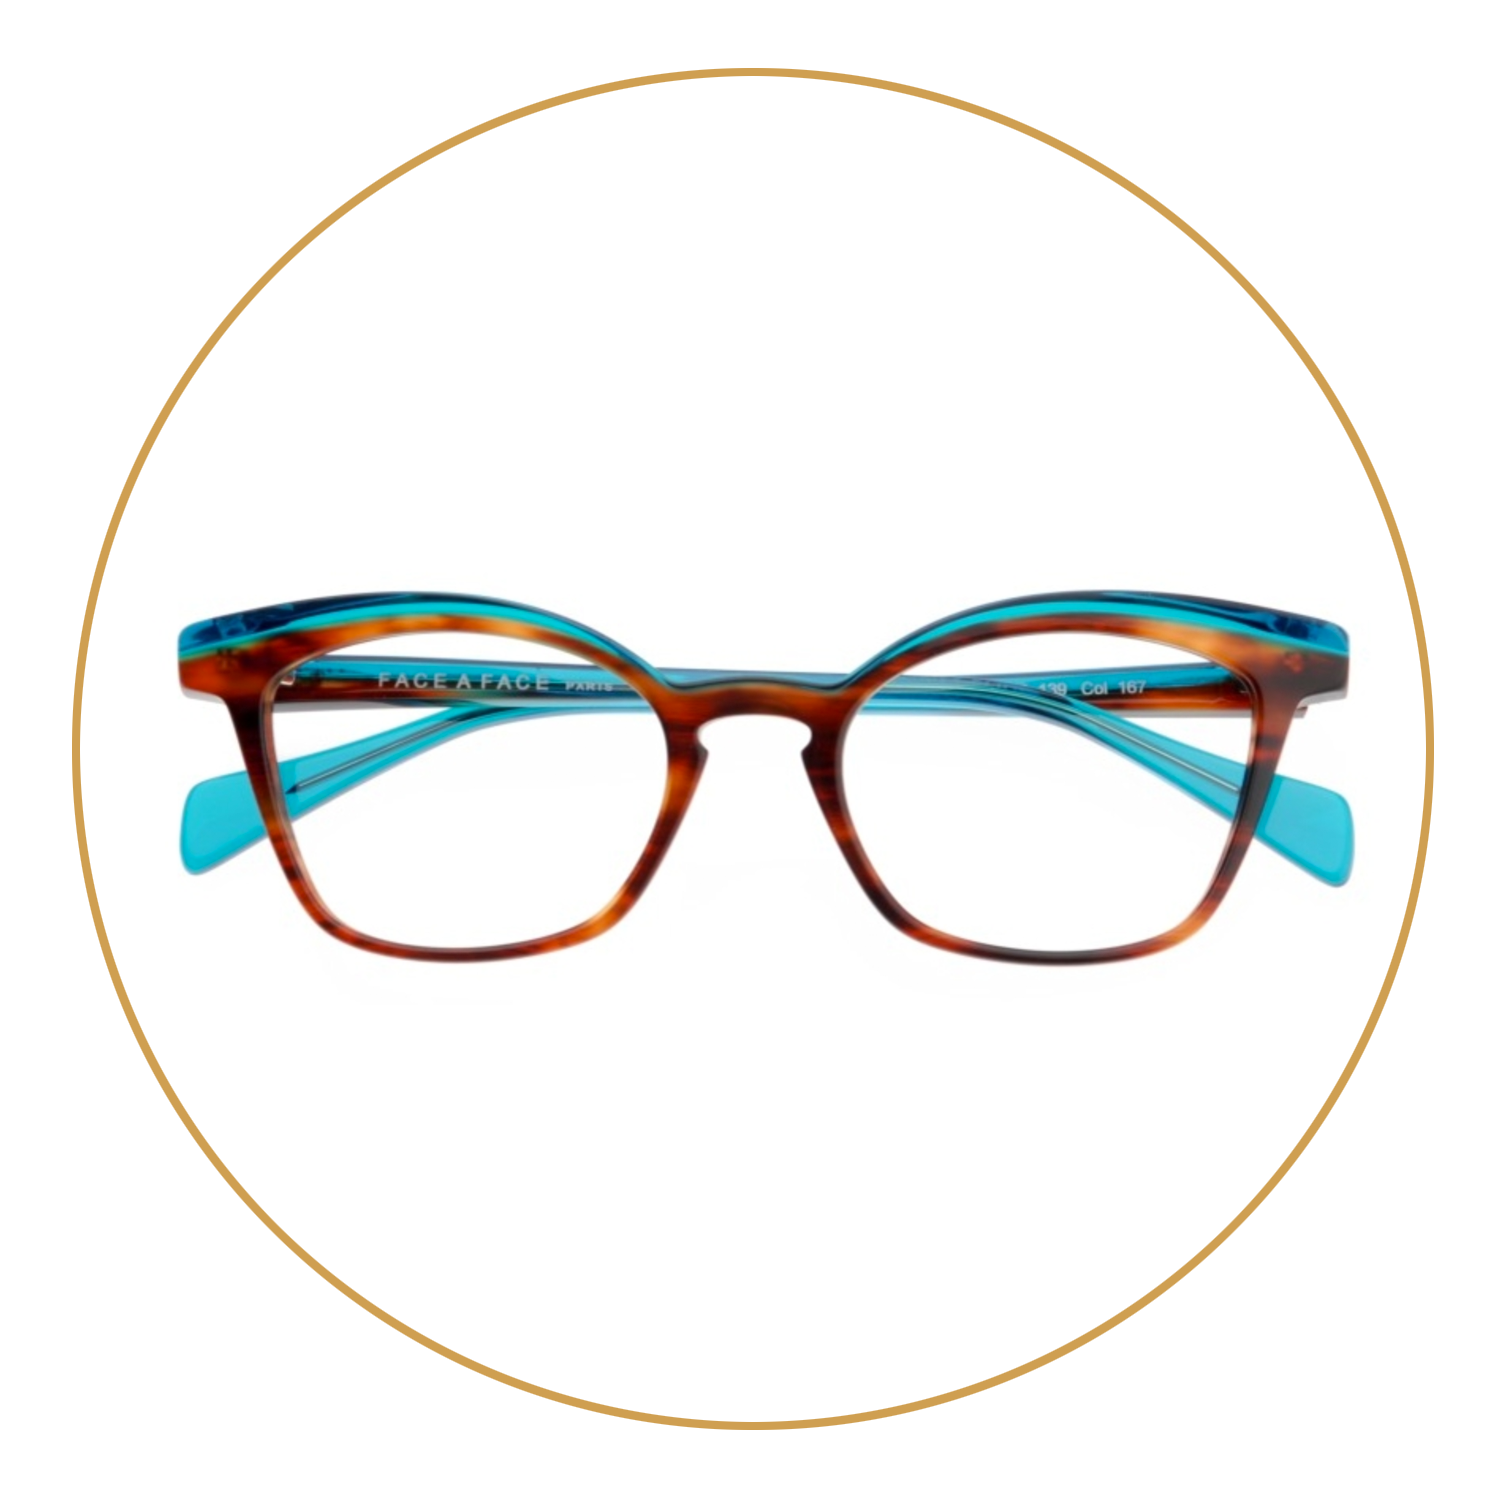 Tortoiseshell - While tortoiseshell patterns have been popular for years, the new trend is to really exaggerate the pattern on the frames and not hold back. Today's tortoiseshell frames can also bring in other colors including blue and aqua to really garner attention and showcase your eyes.